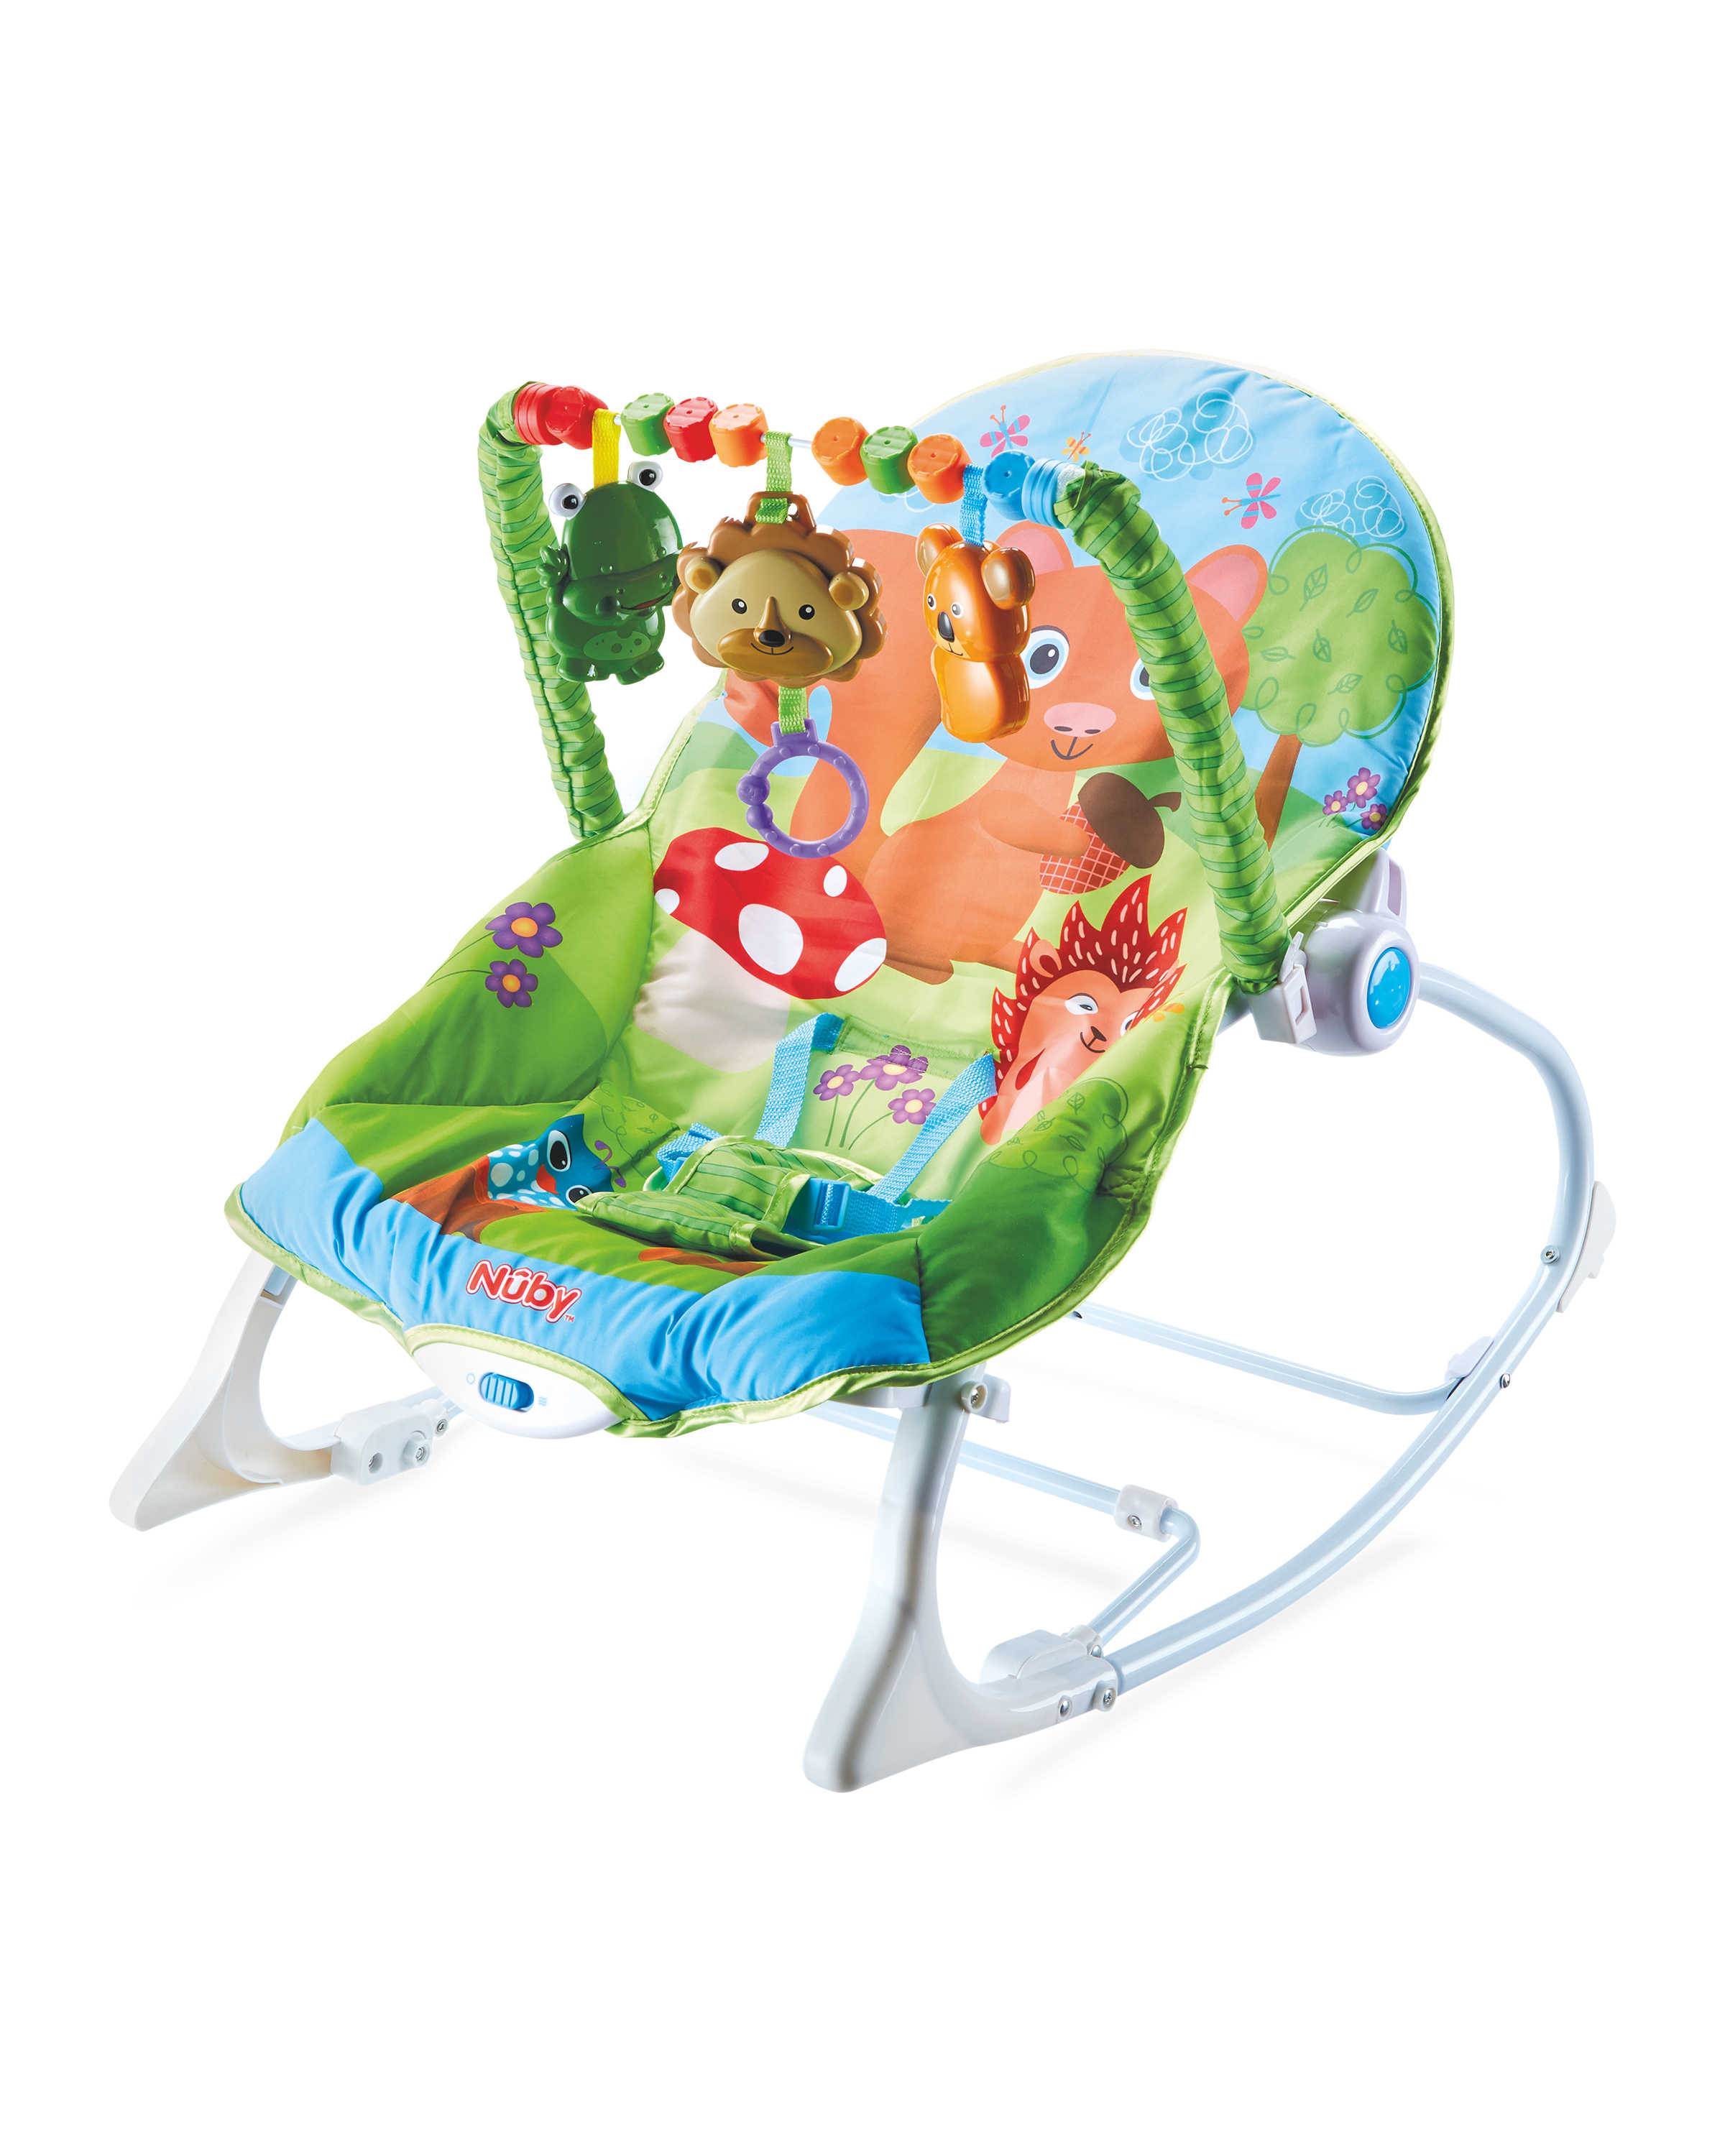 THE ALDI BABY EVENT IS ONLINE NOW